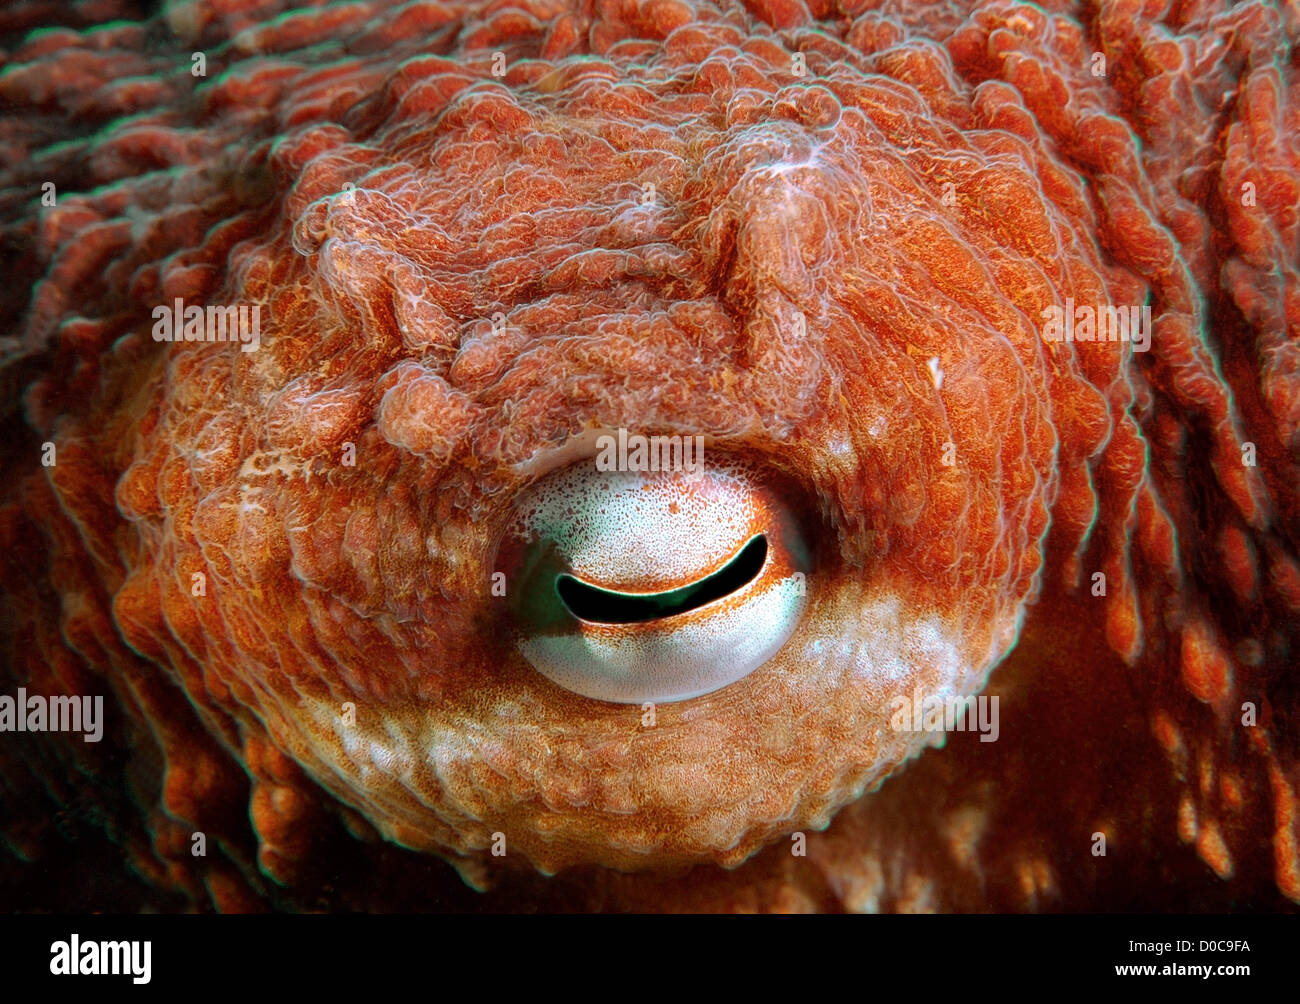 Giant Pacific octopus or North Pacific Giant octopus (Enteroctopus dofleini), Japan Sea, Far East, Primorsky Krai, - Stock Image